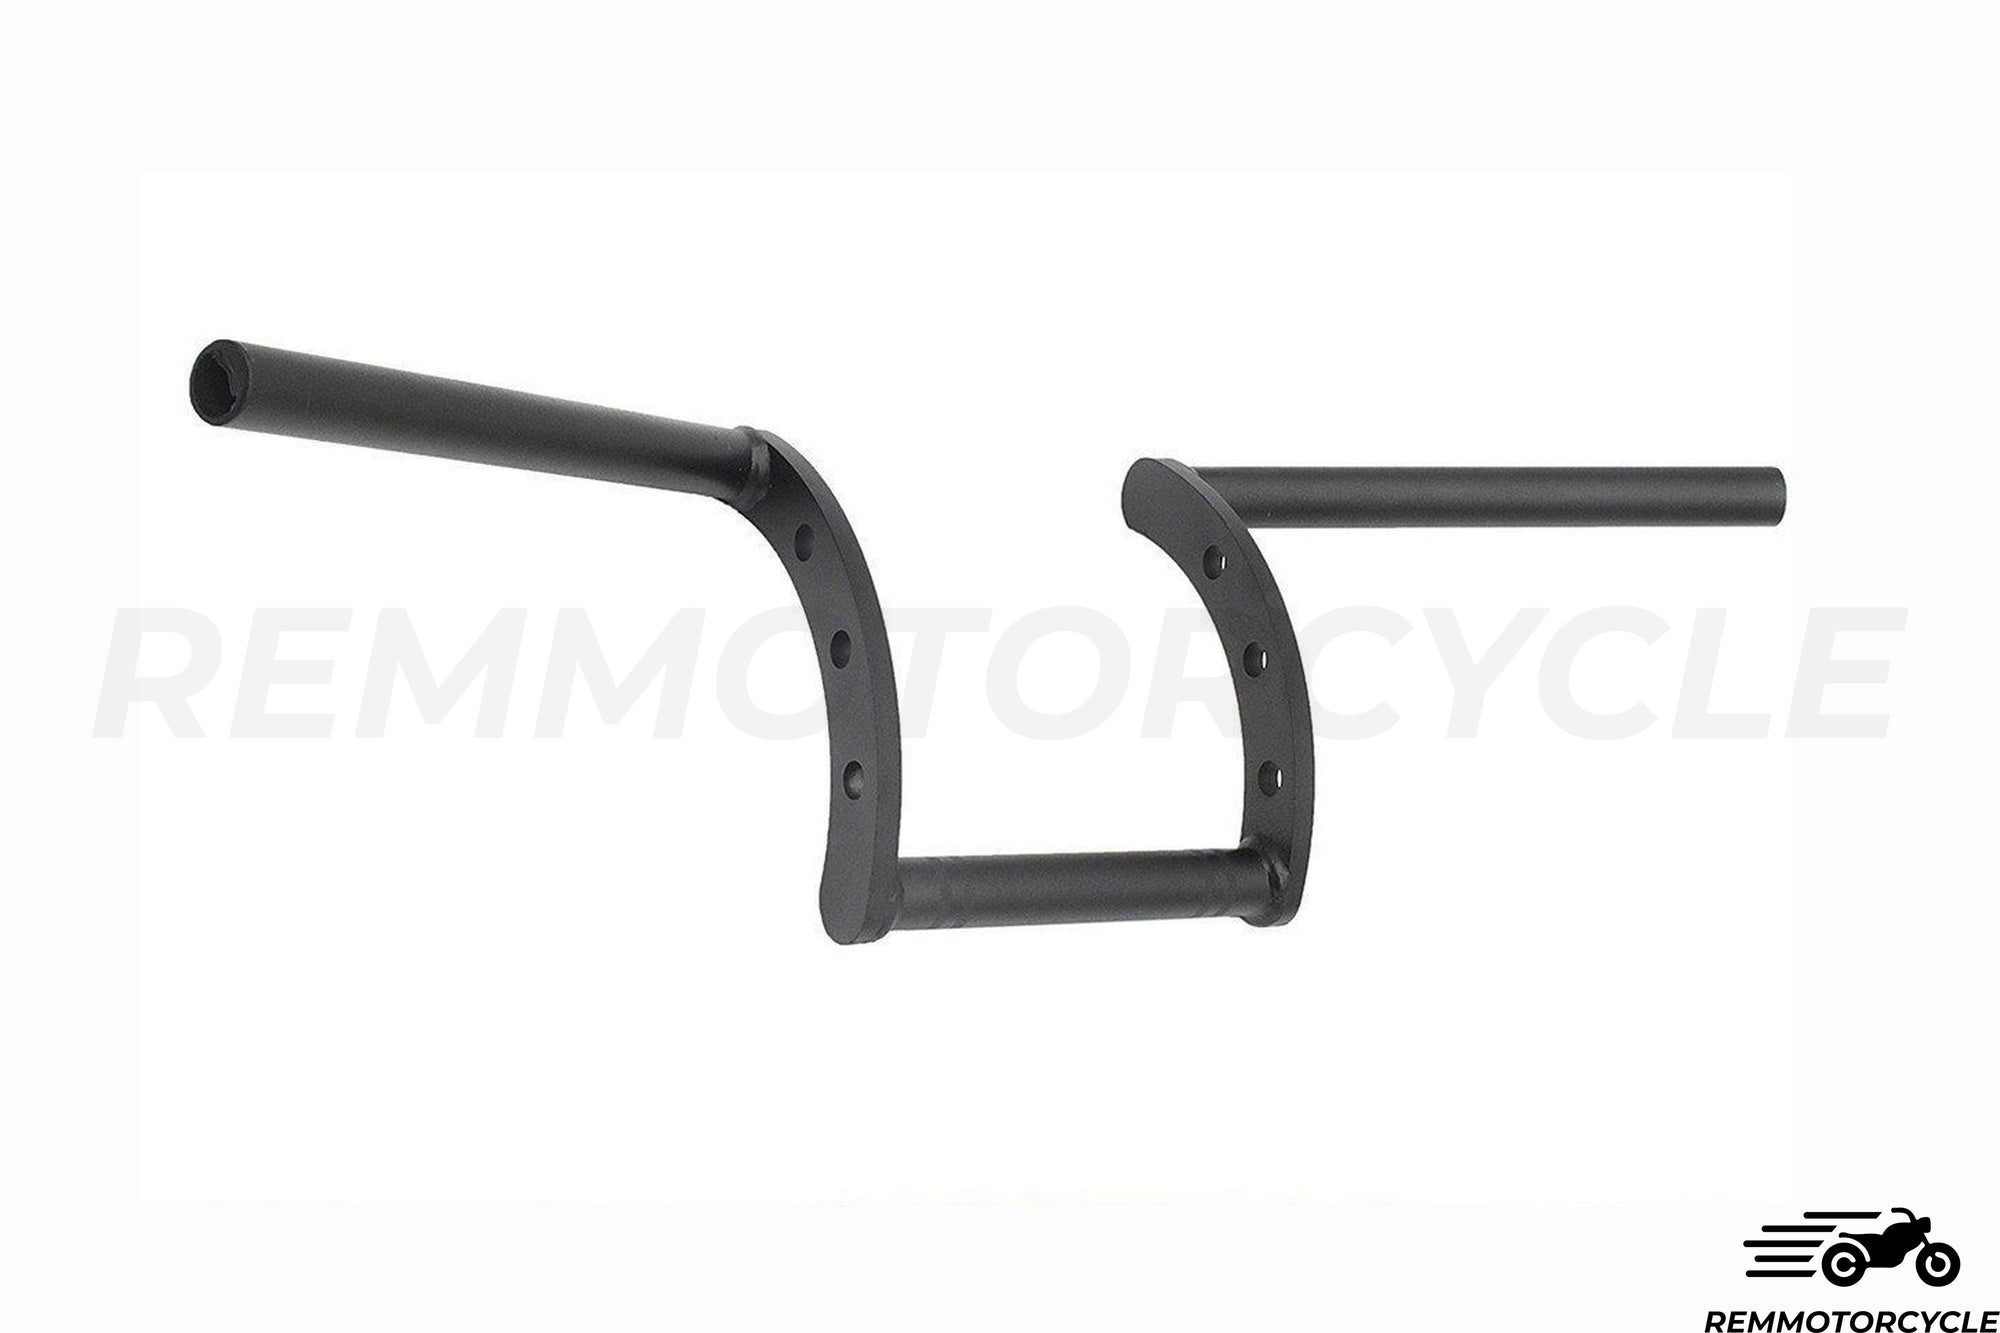 Guidon 22 ou 25 mm Z-BAR Noir Mat ou Chrome